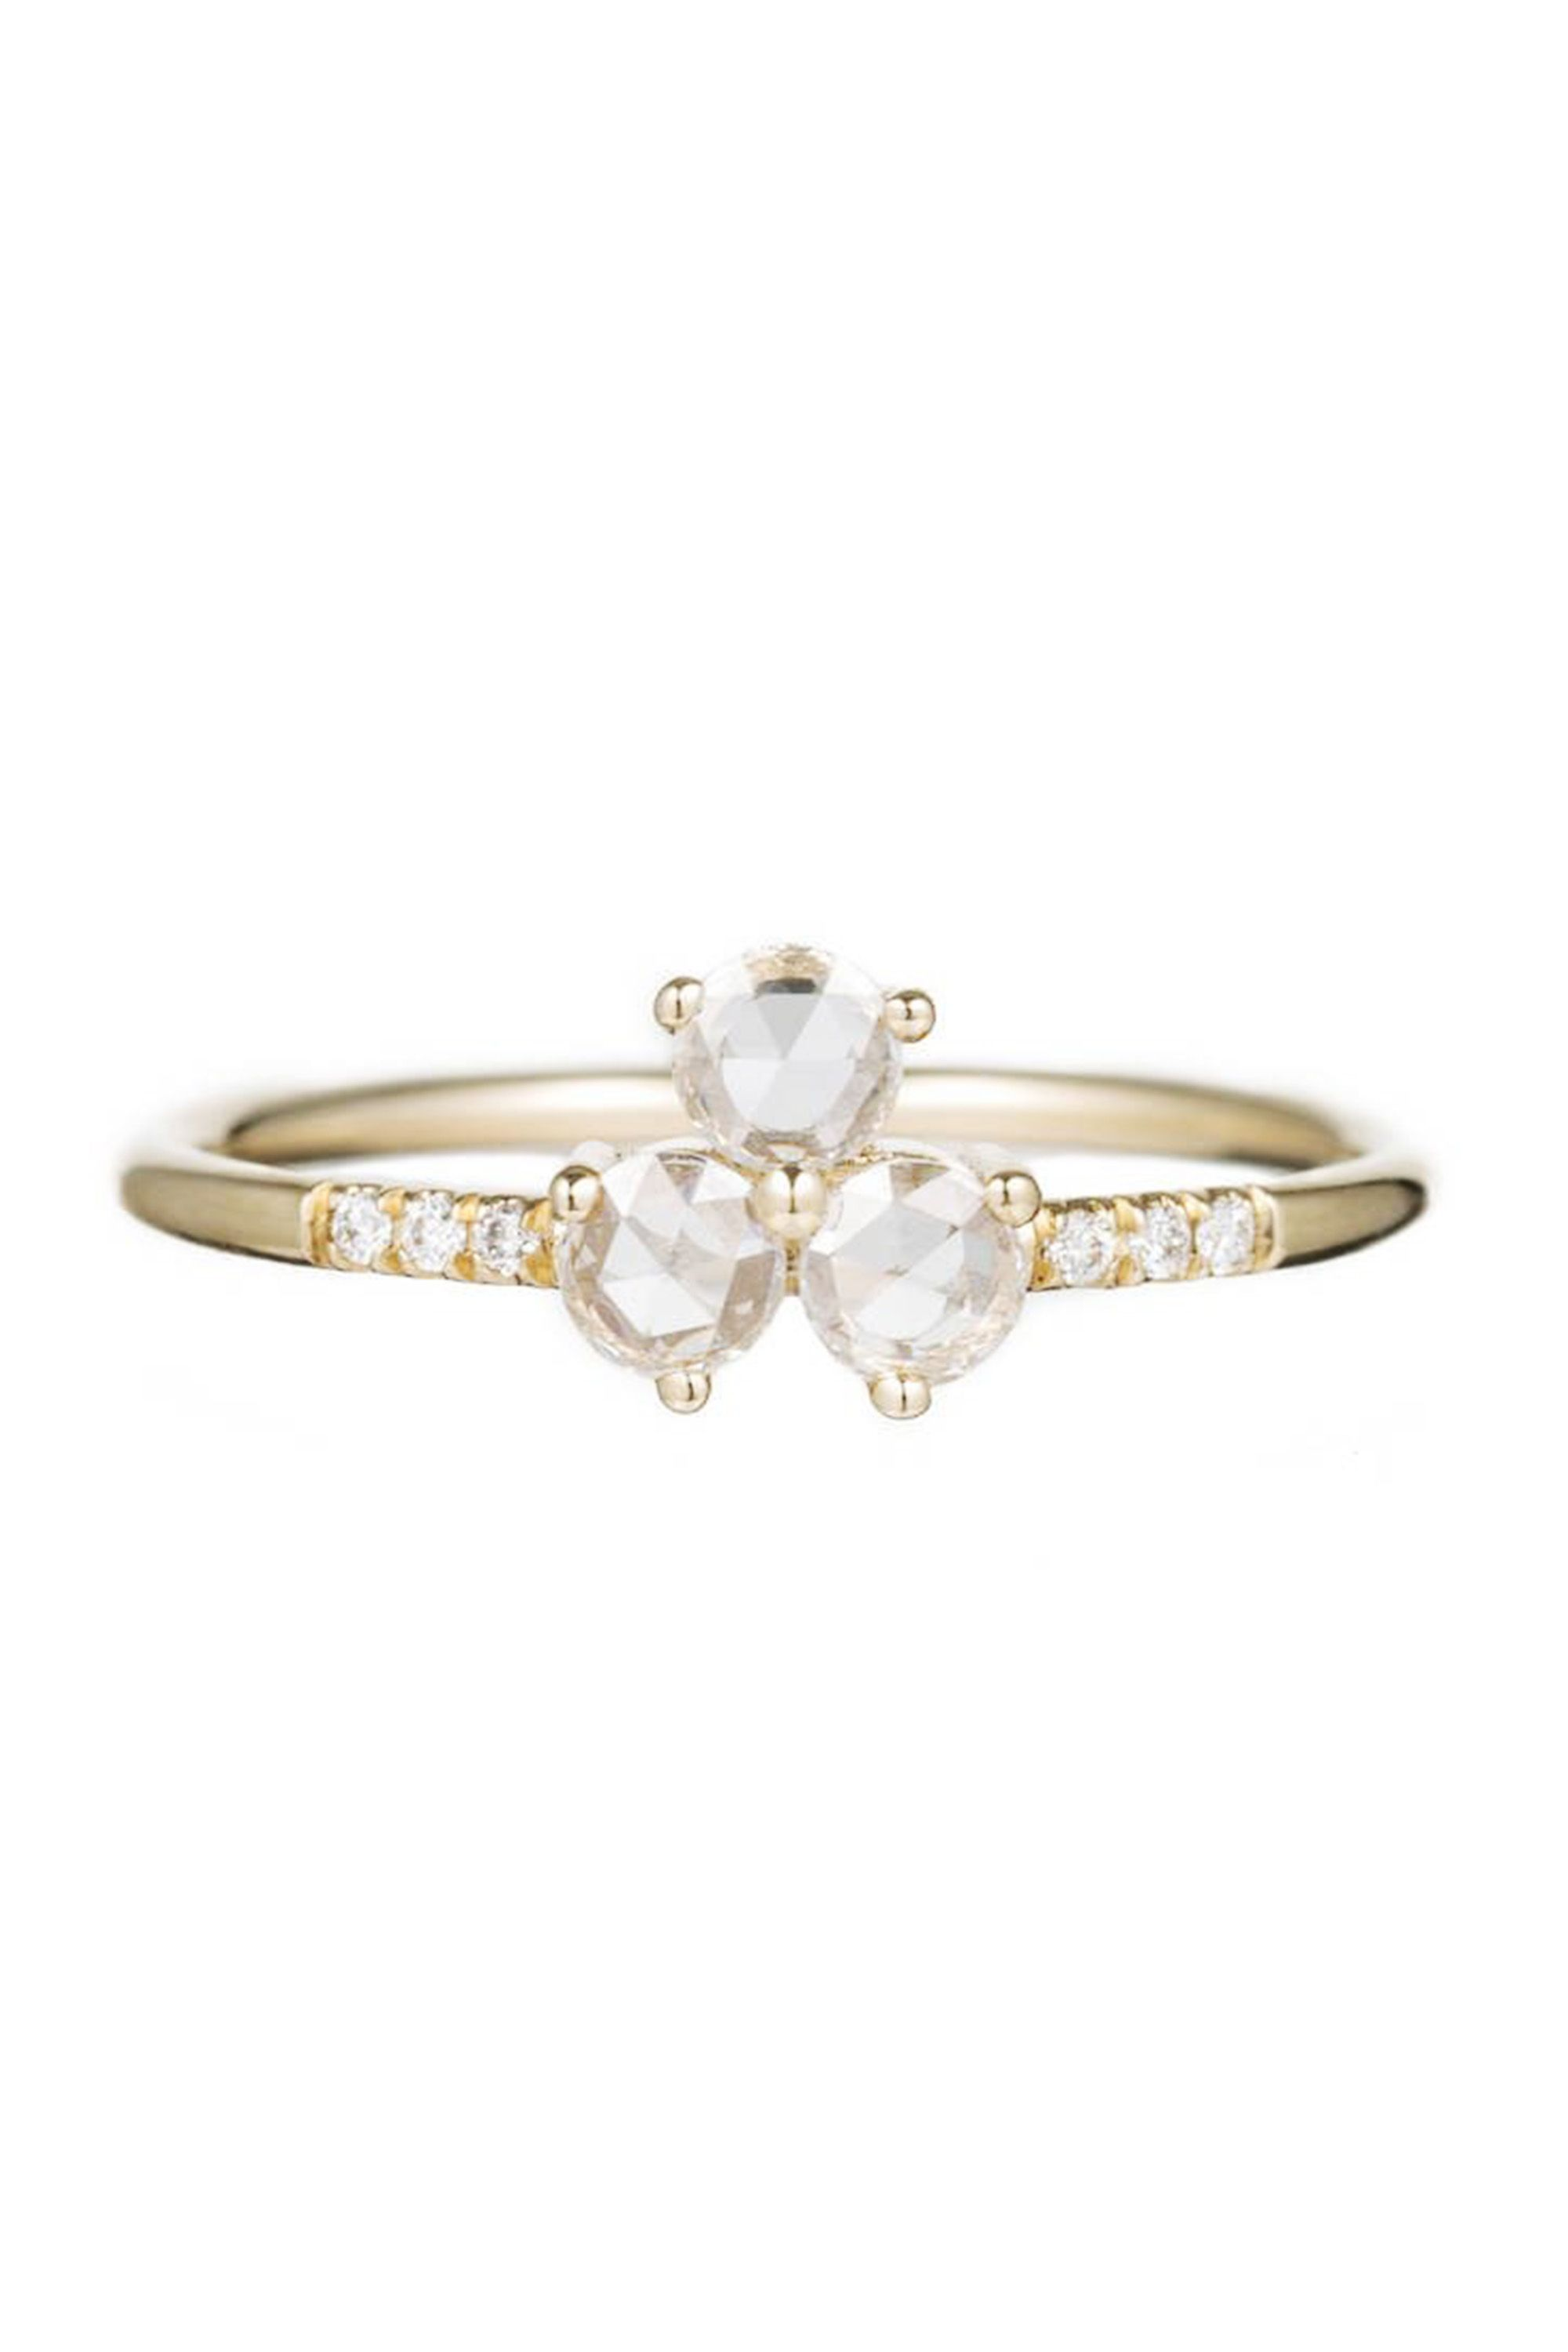 41 unique engagement rings beautiful non diamond and unusual engagement rings - Nontraditional Wedding Rings